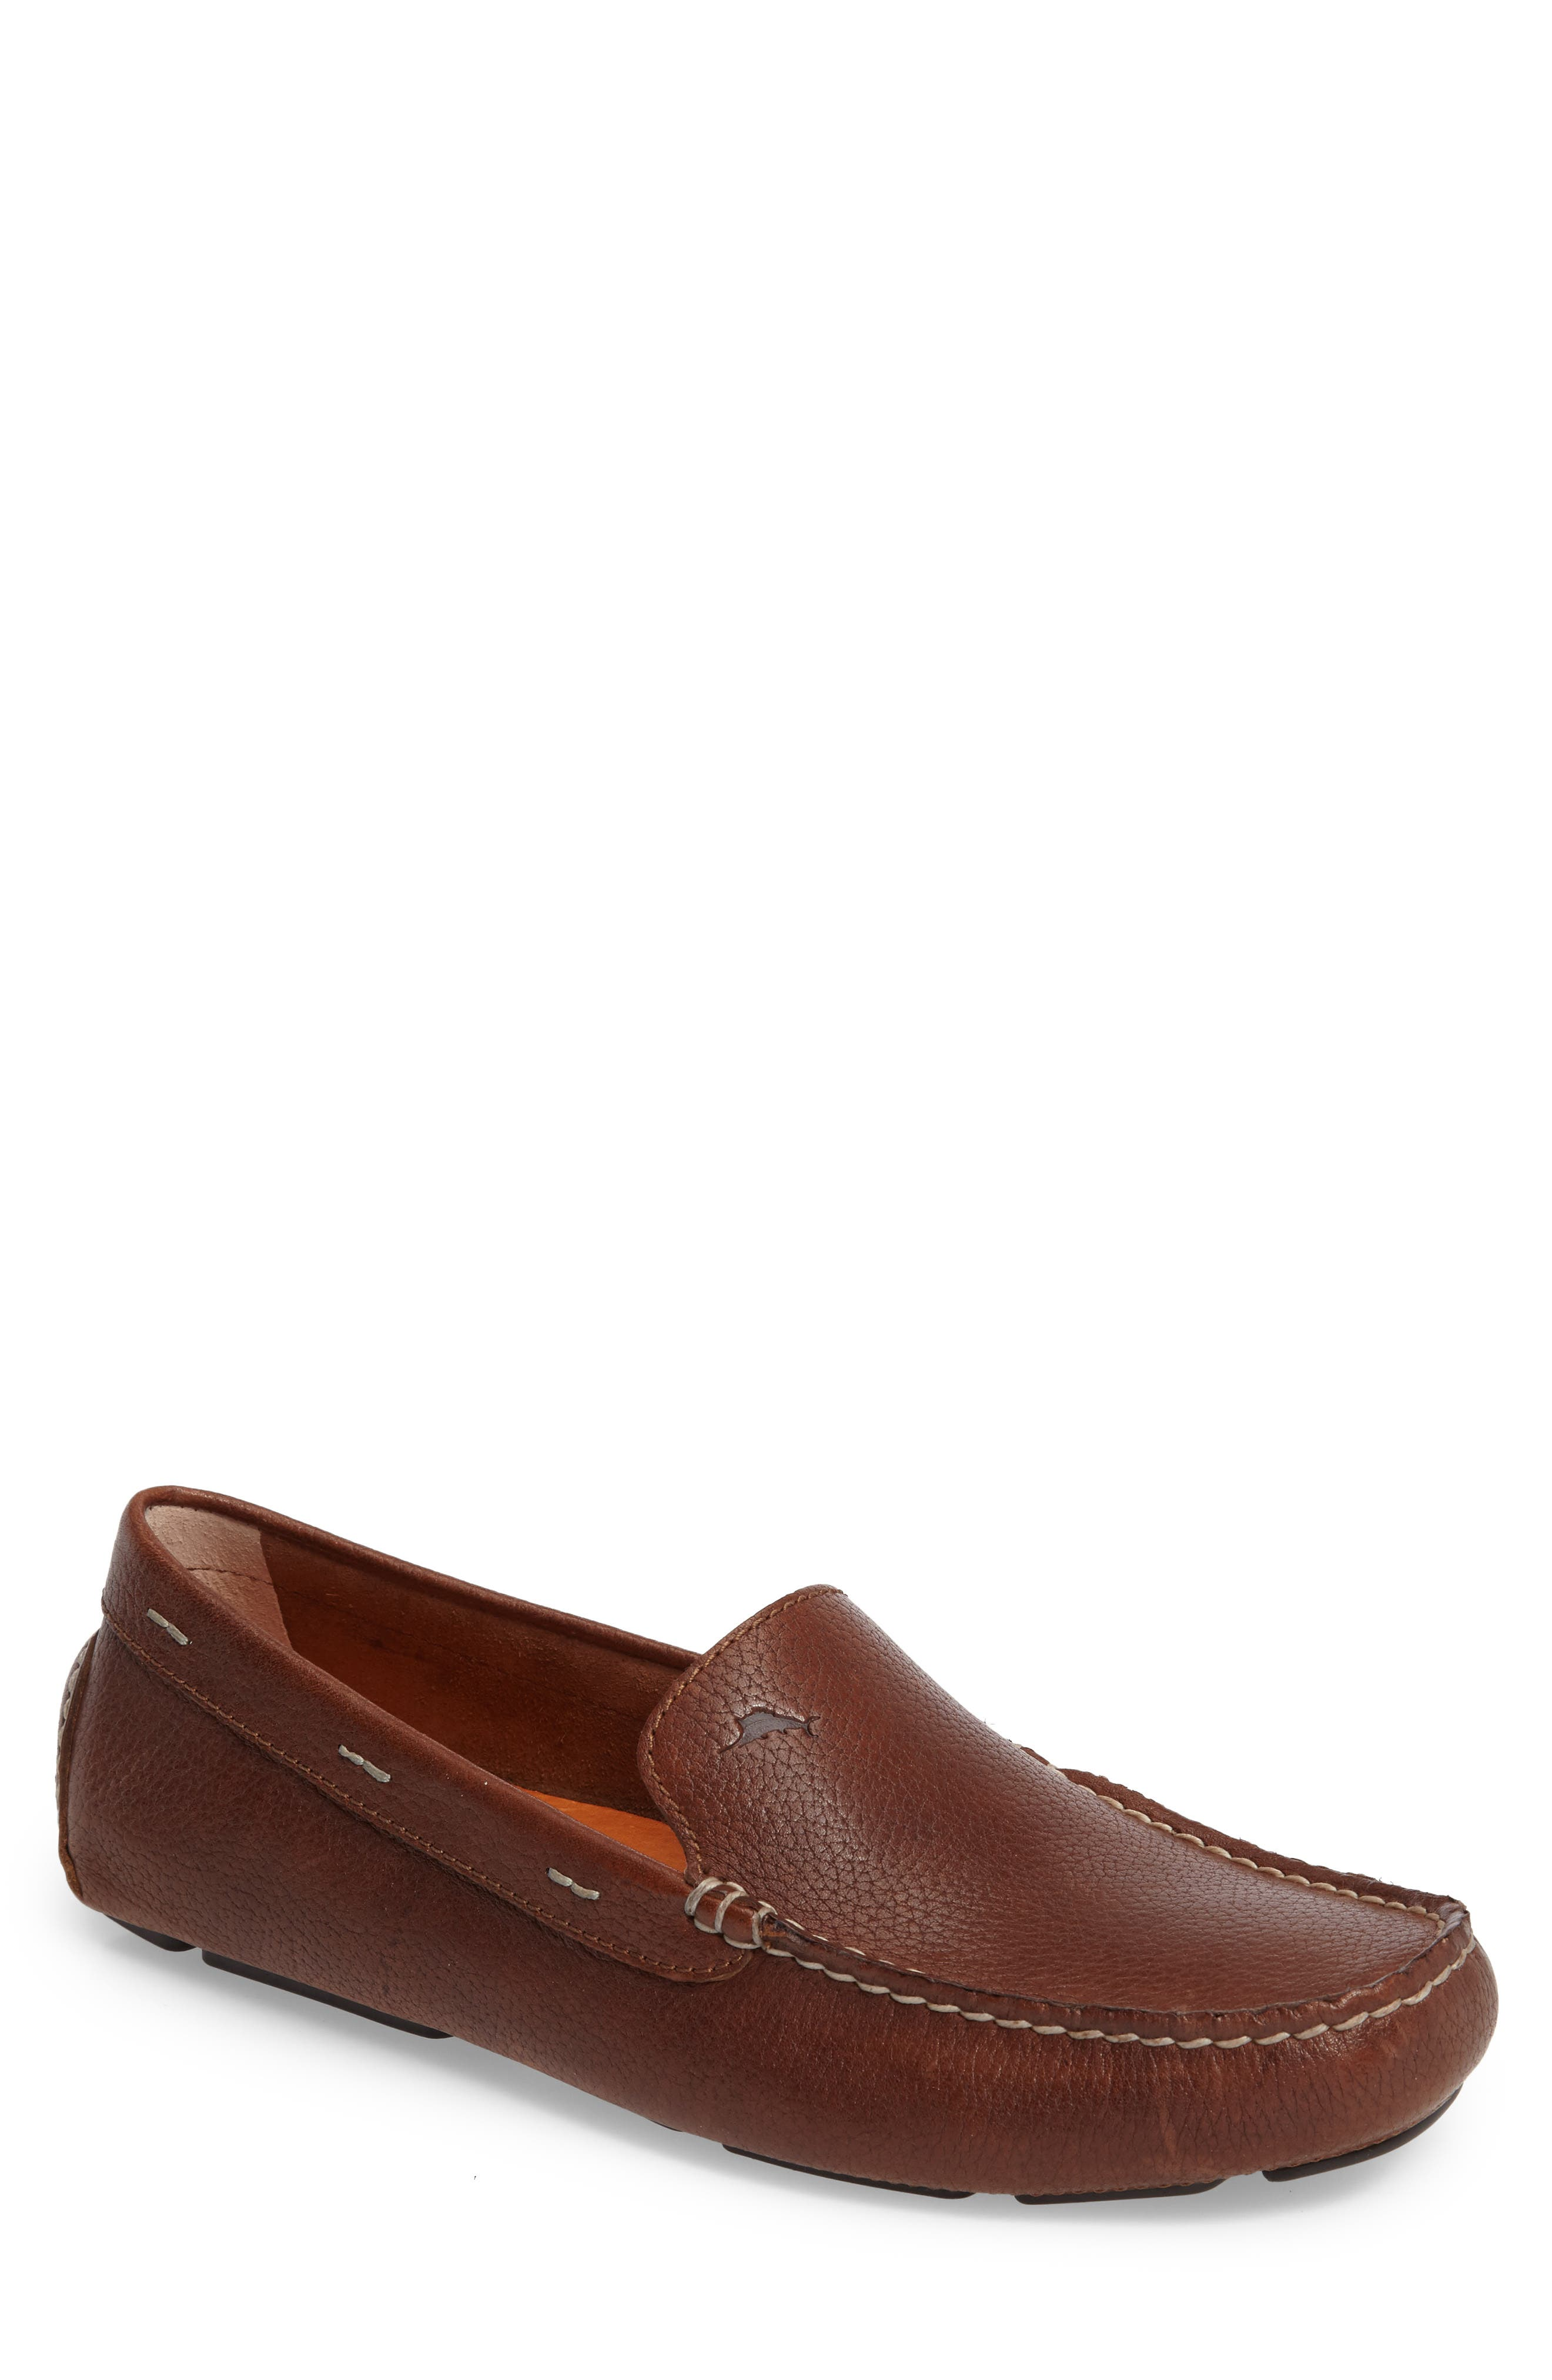 Pagota Driving Loafer,                             Main thumbnail 1, color,                             DARK BROWN LEATHER